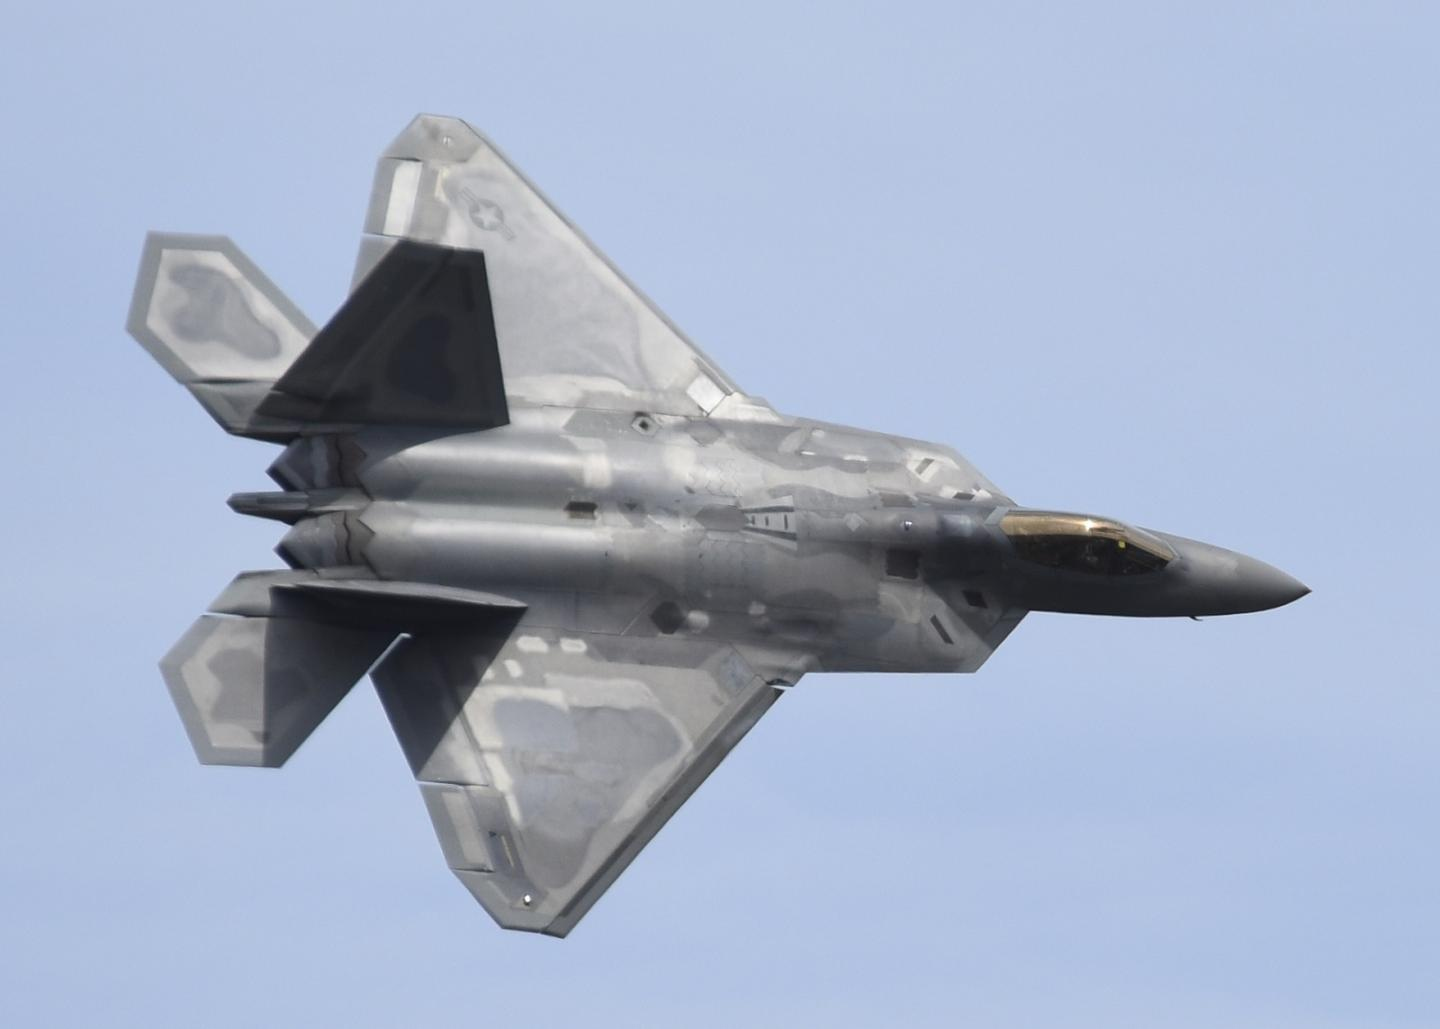 How Americas F-22s (Now Near Iran) Could Strike If War Breaks Out